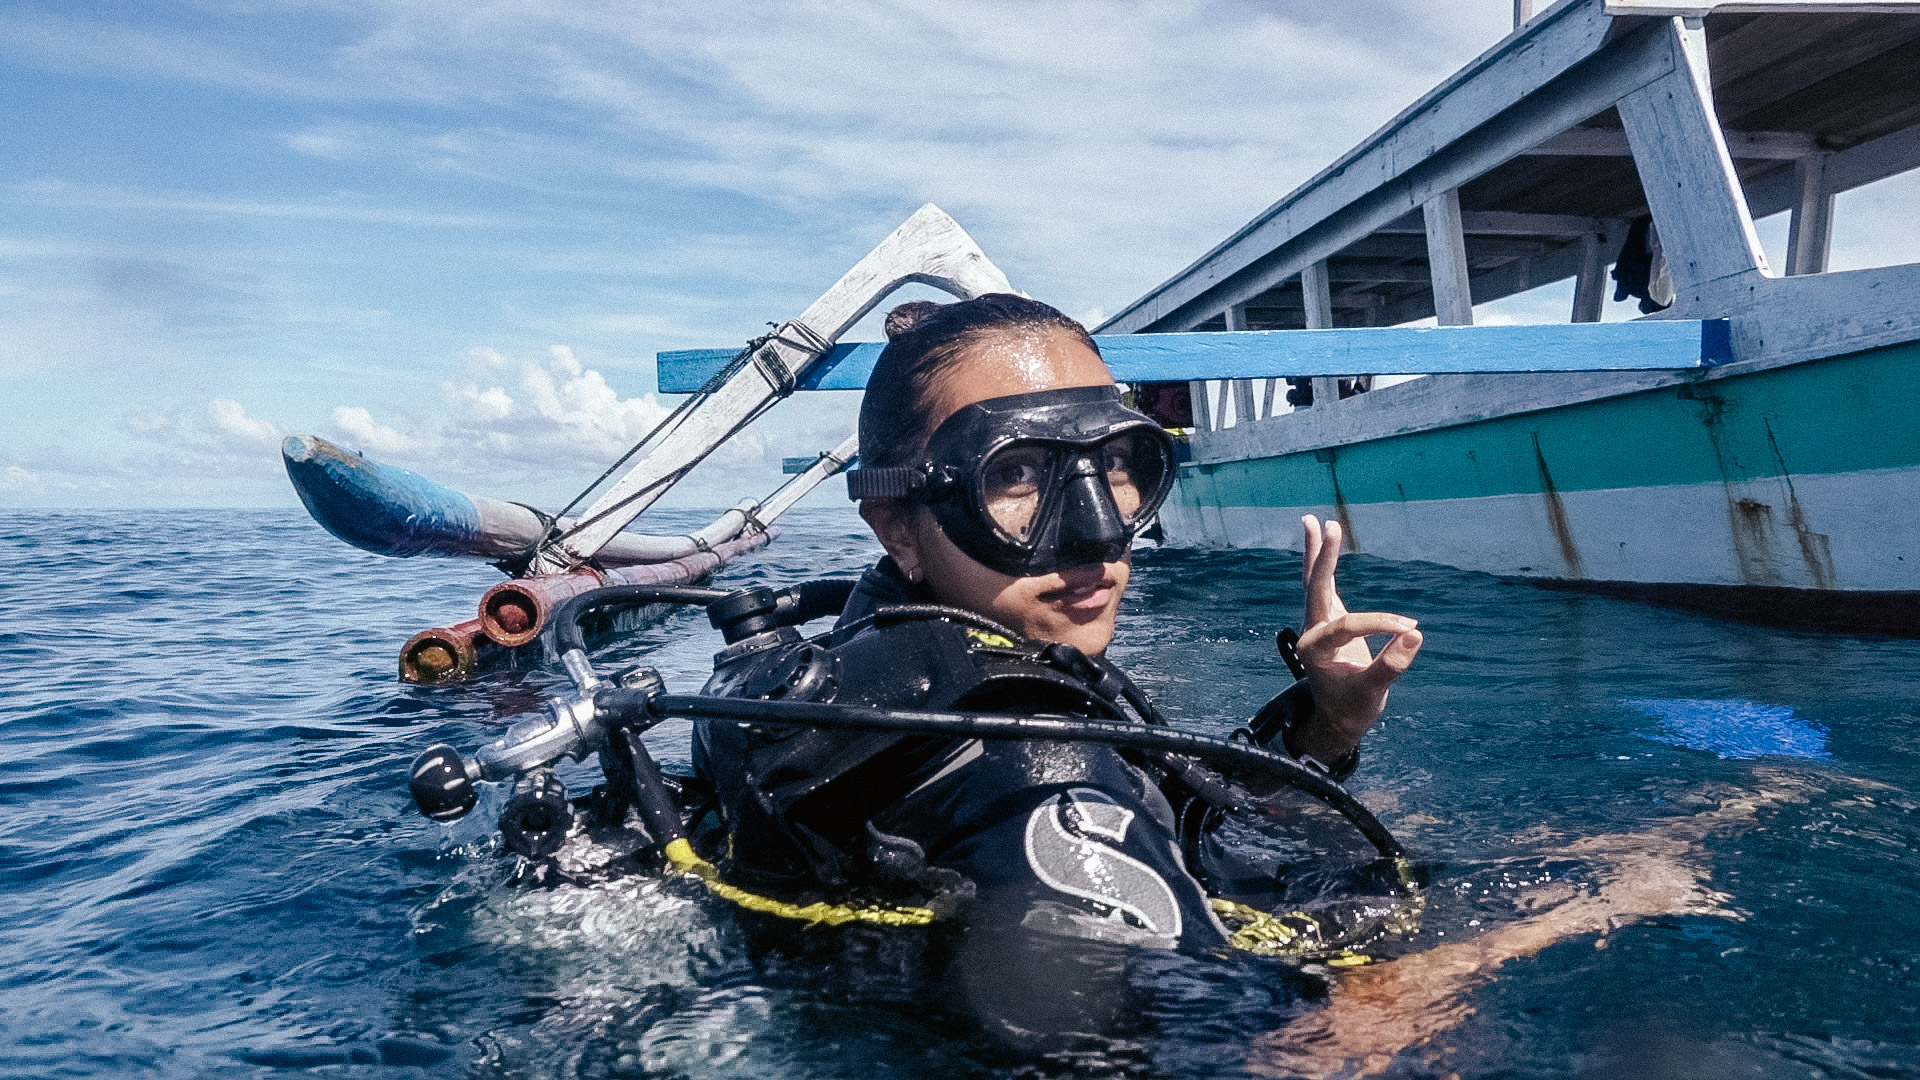 PADI Open Water Diver course experience, everything you need to know.